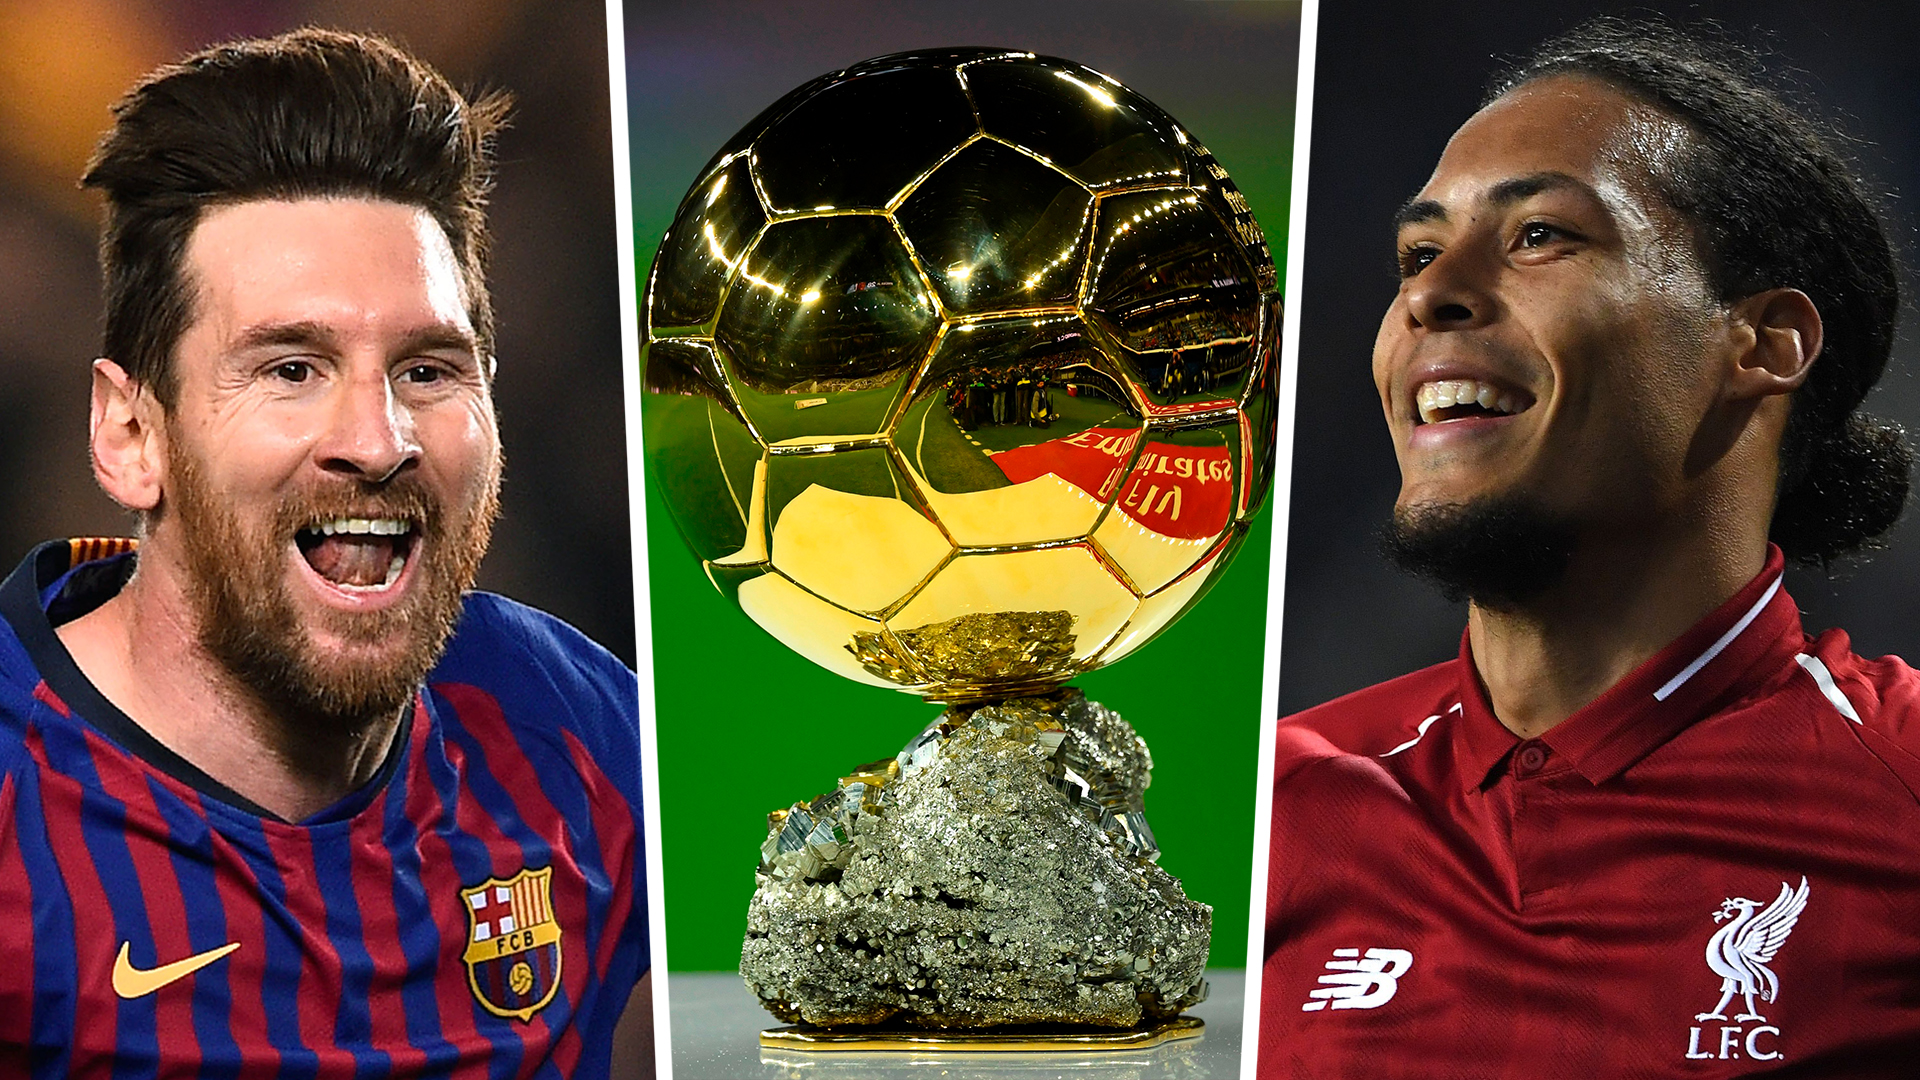 'Van Dijk deserves to beat Messi to Ballon d'Or' - Liverpool defender is irreplaceable, says former Red